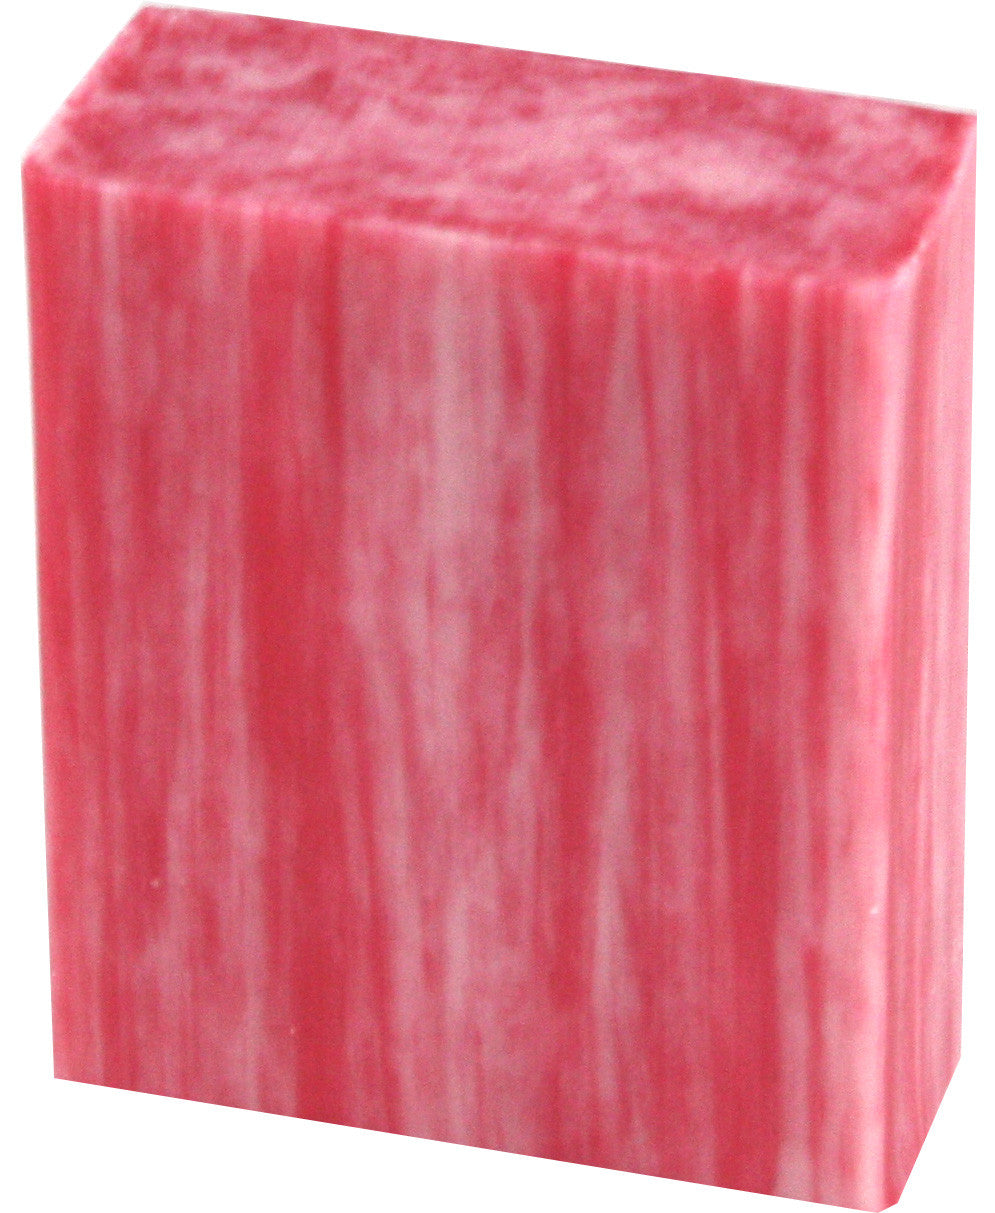 Melon strawberry soap bar